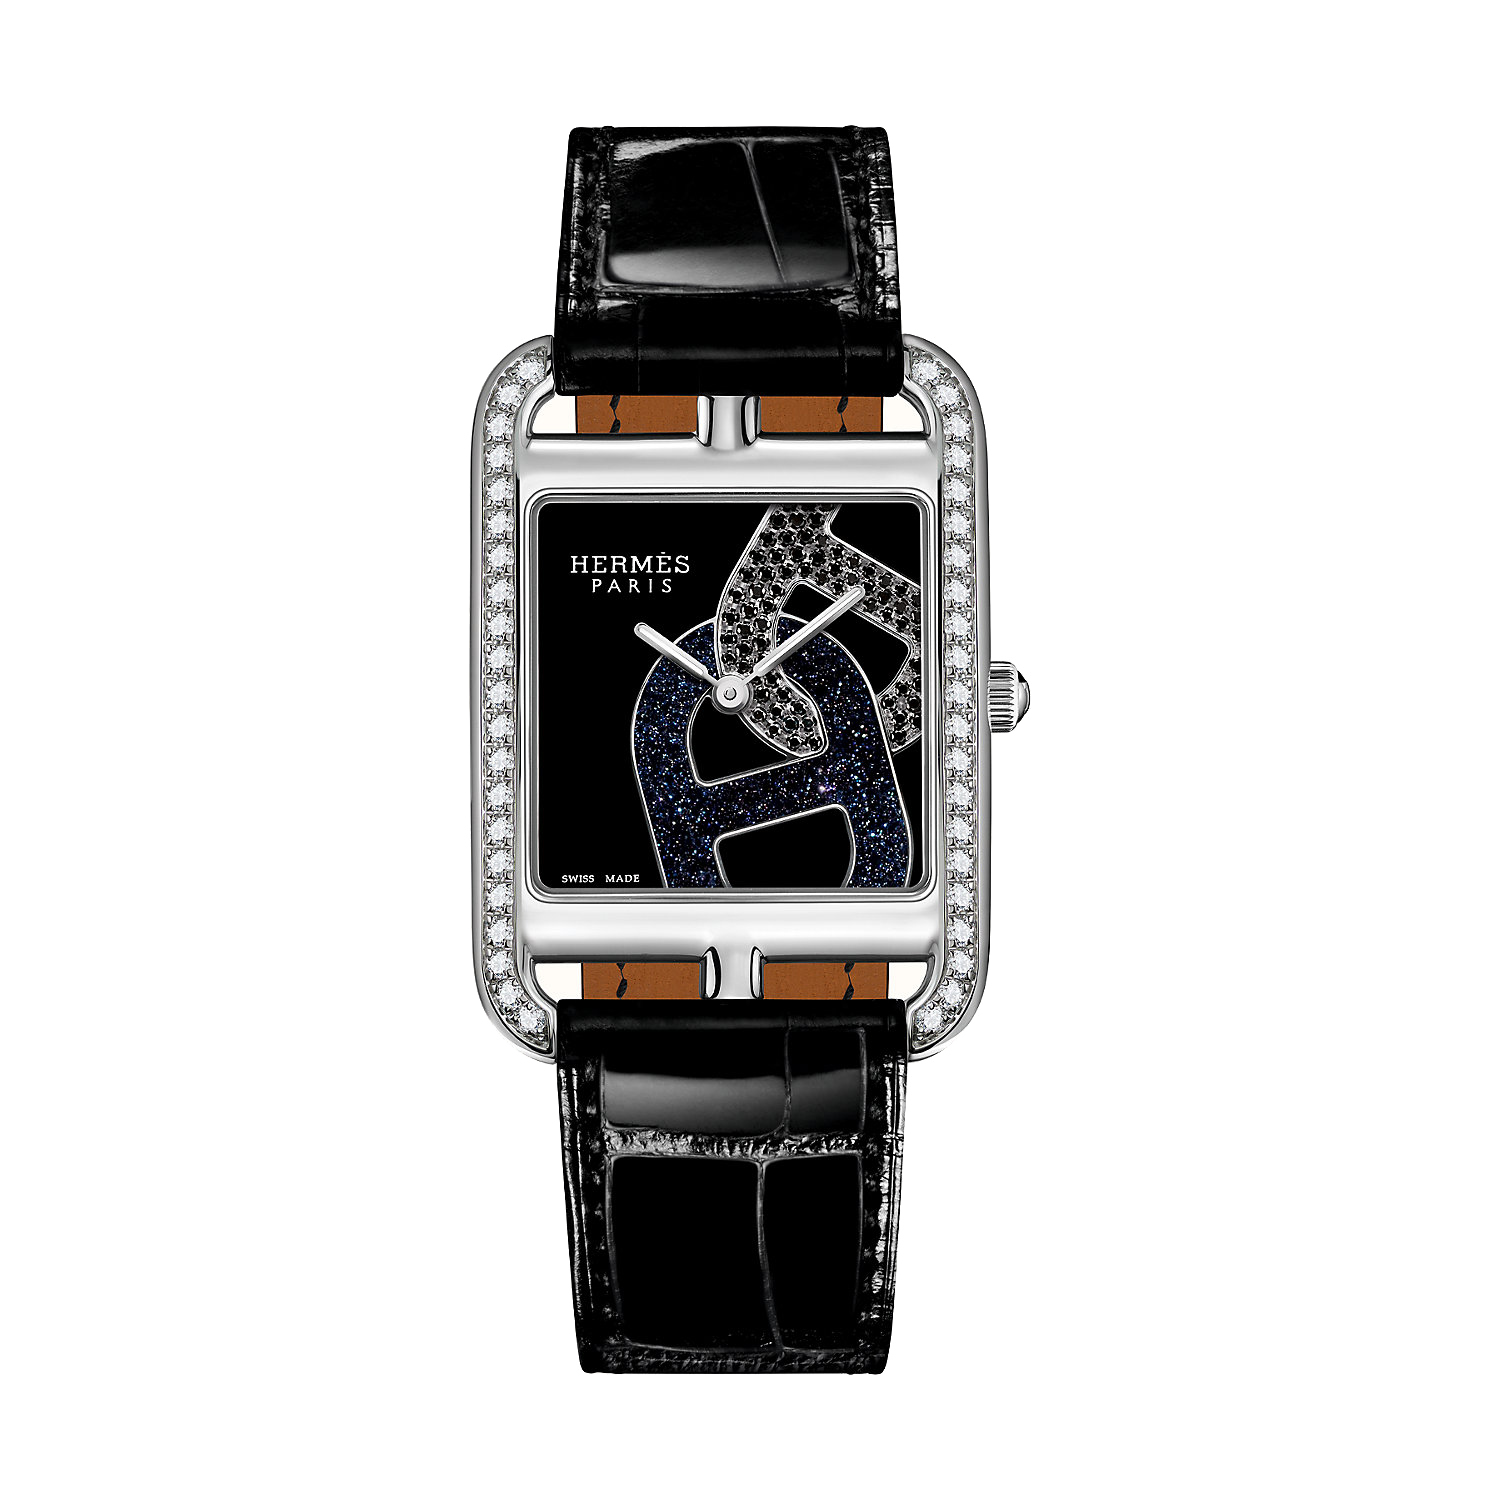 Hermès-cape-cod-chaine-d-ancre-joaillier-29-x-29mm-Hall-of-Time-047237WW00